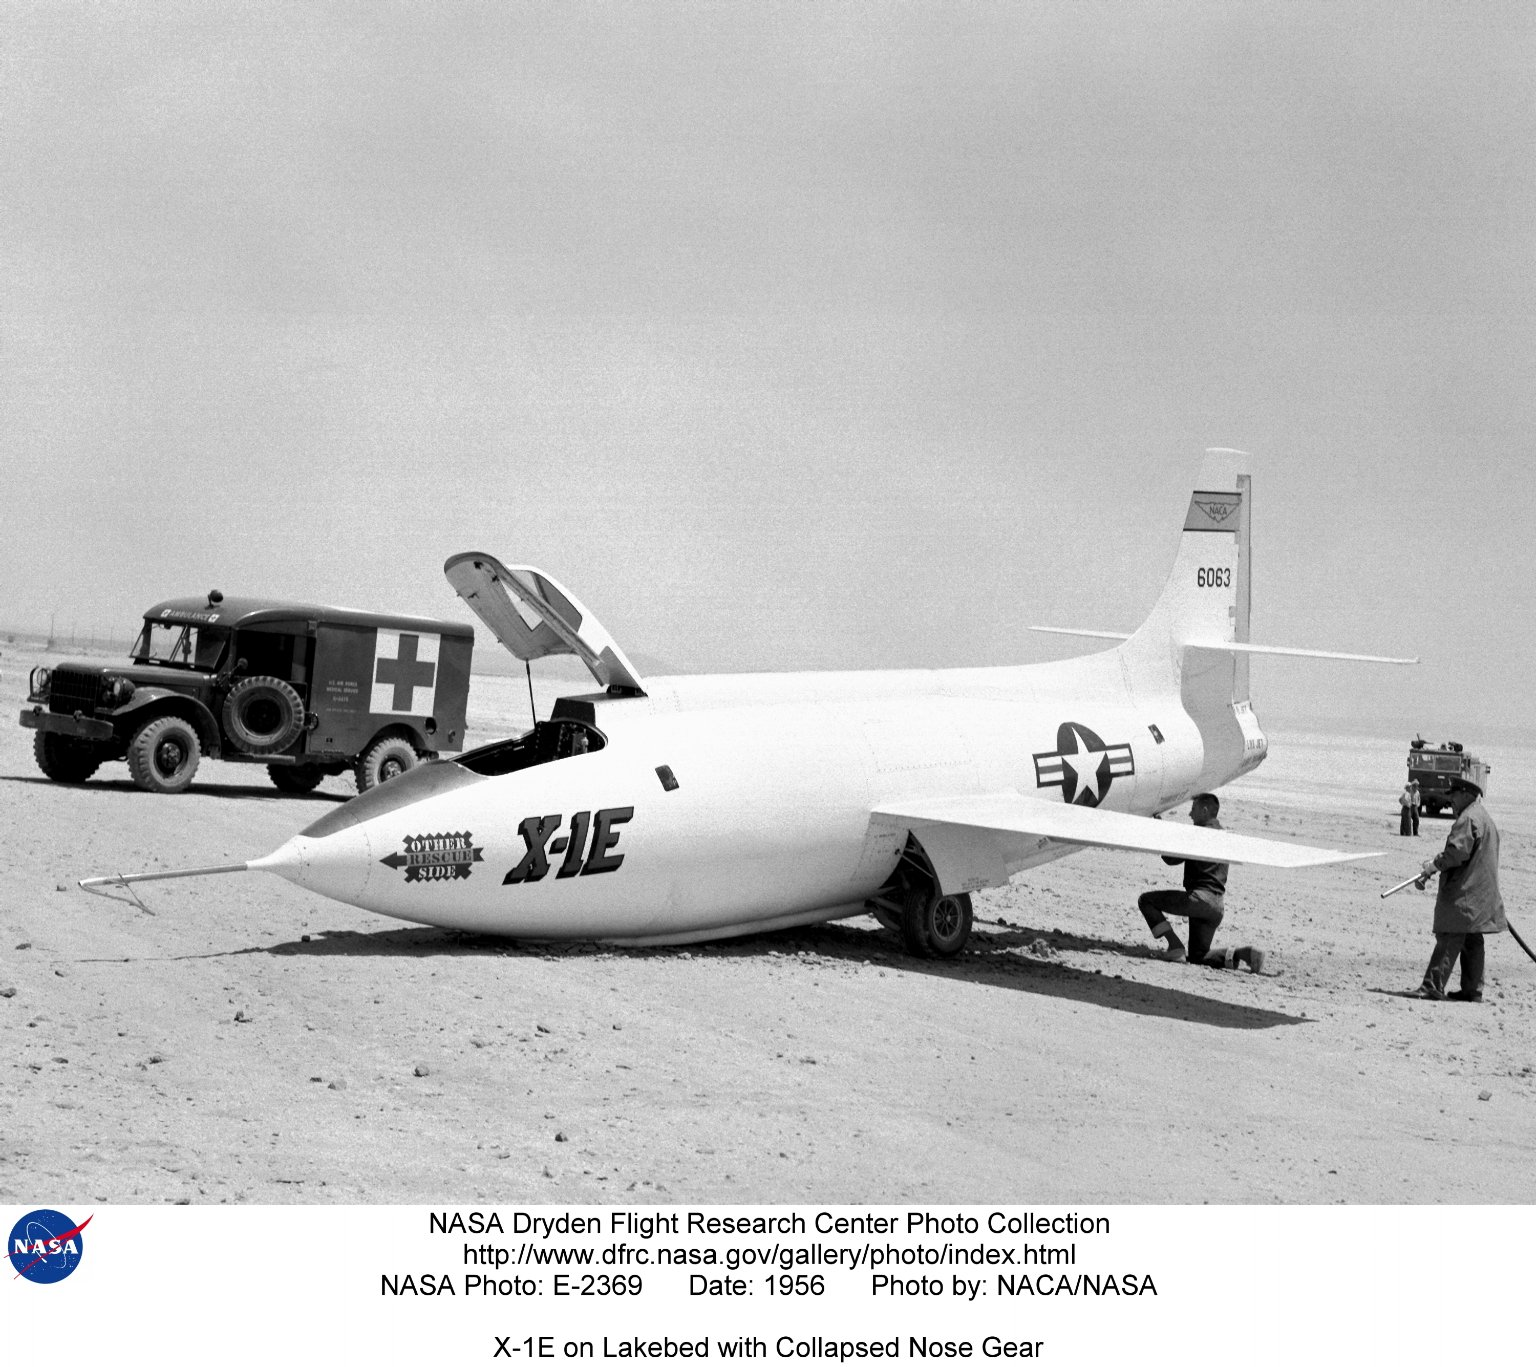 X-1E on Lakebed with Collapsed Nose Gear